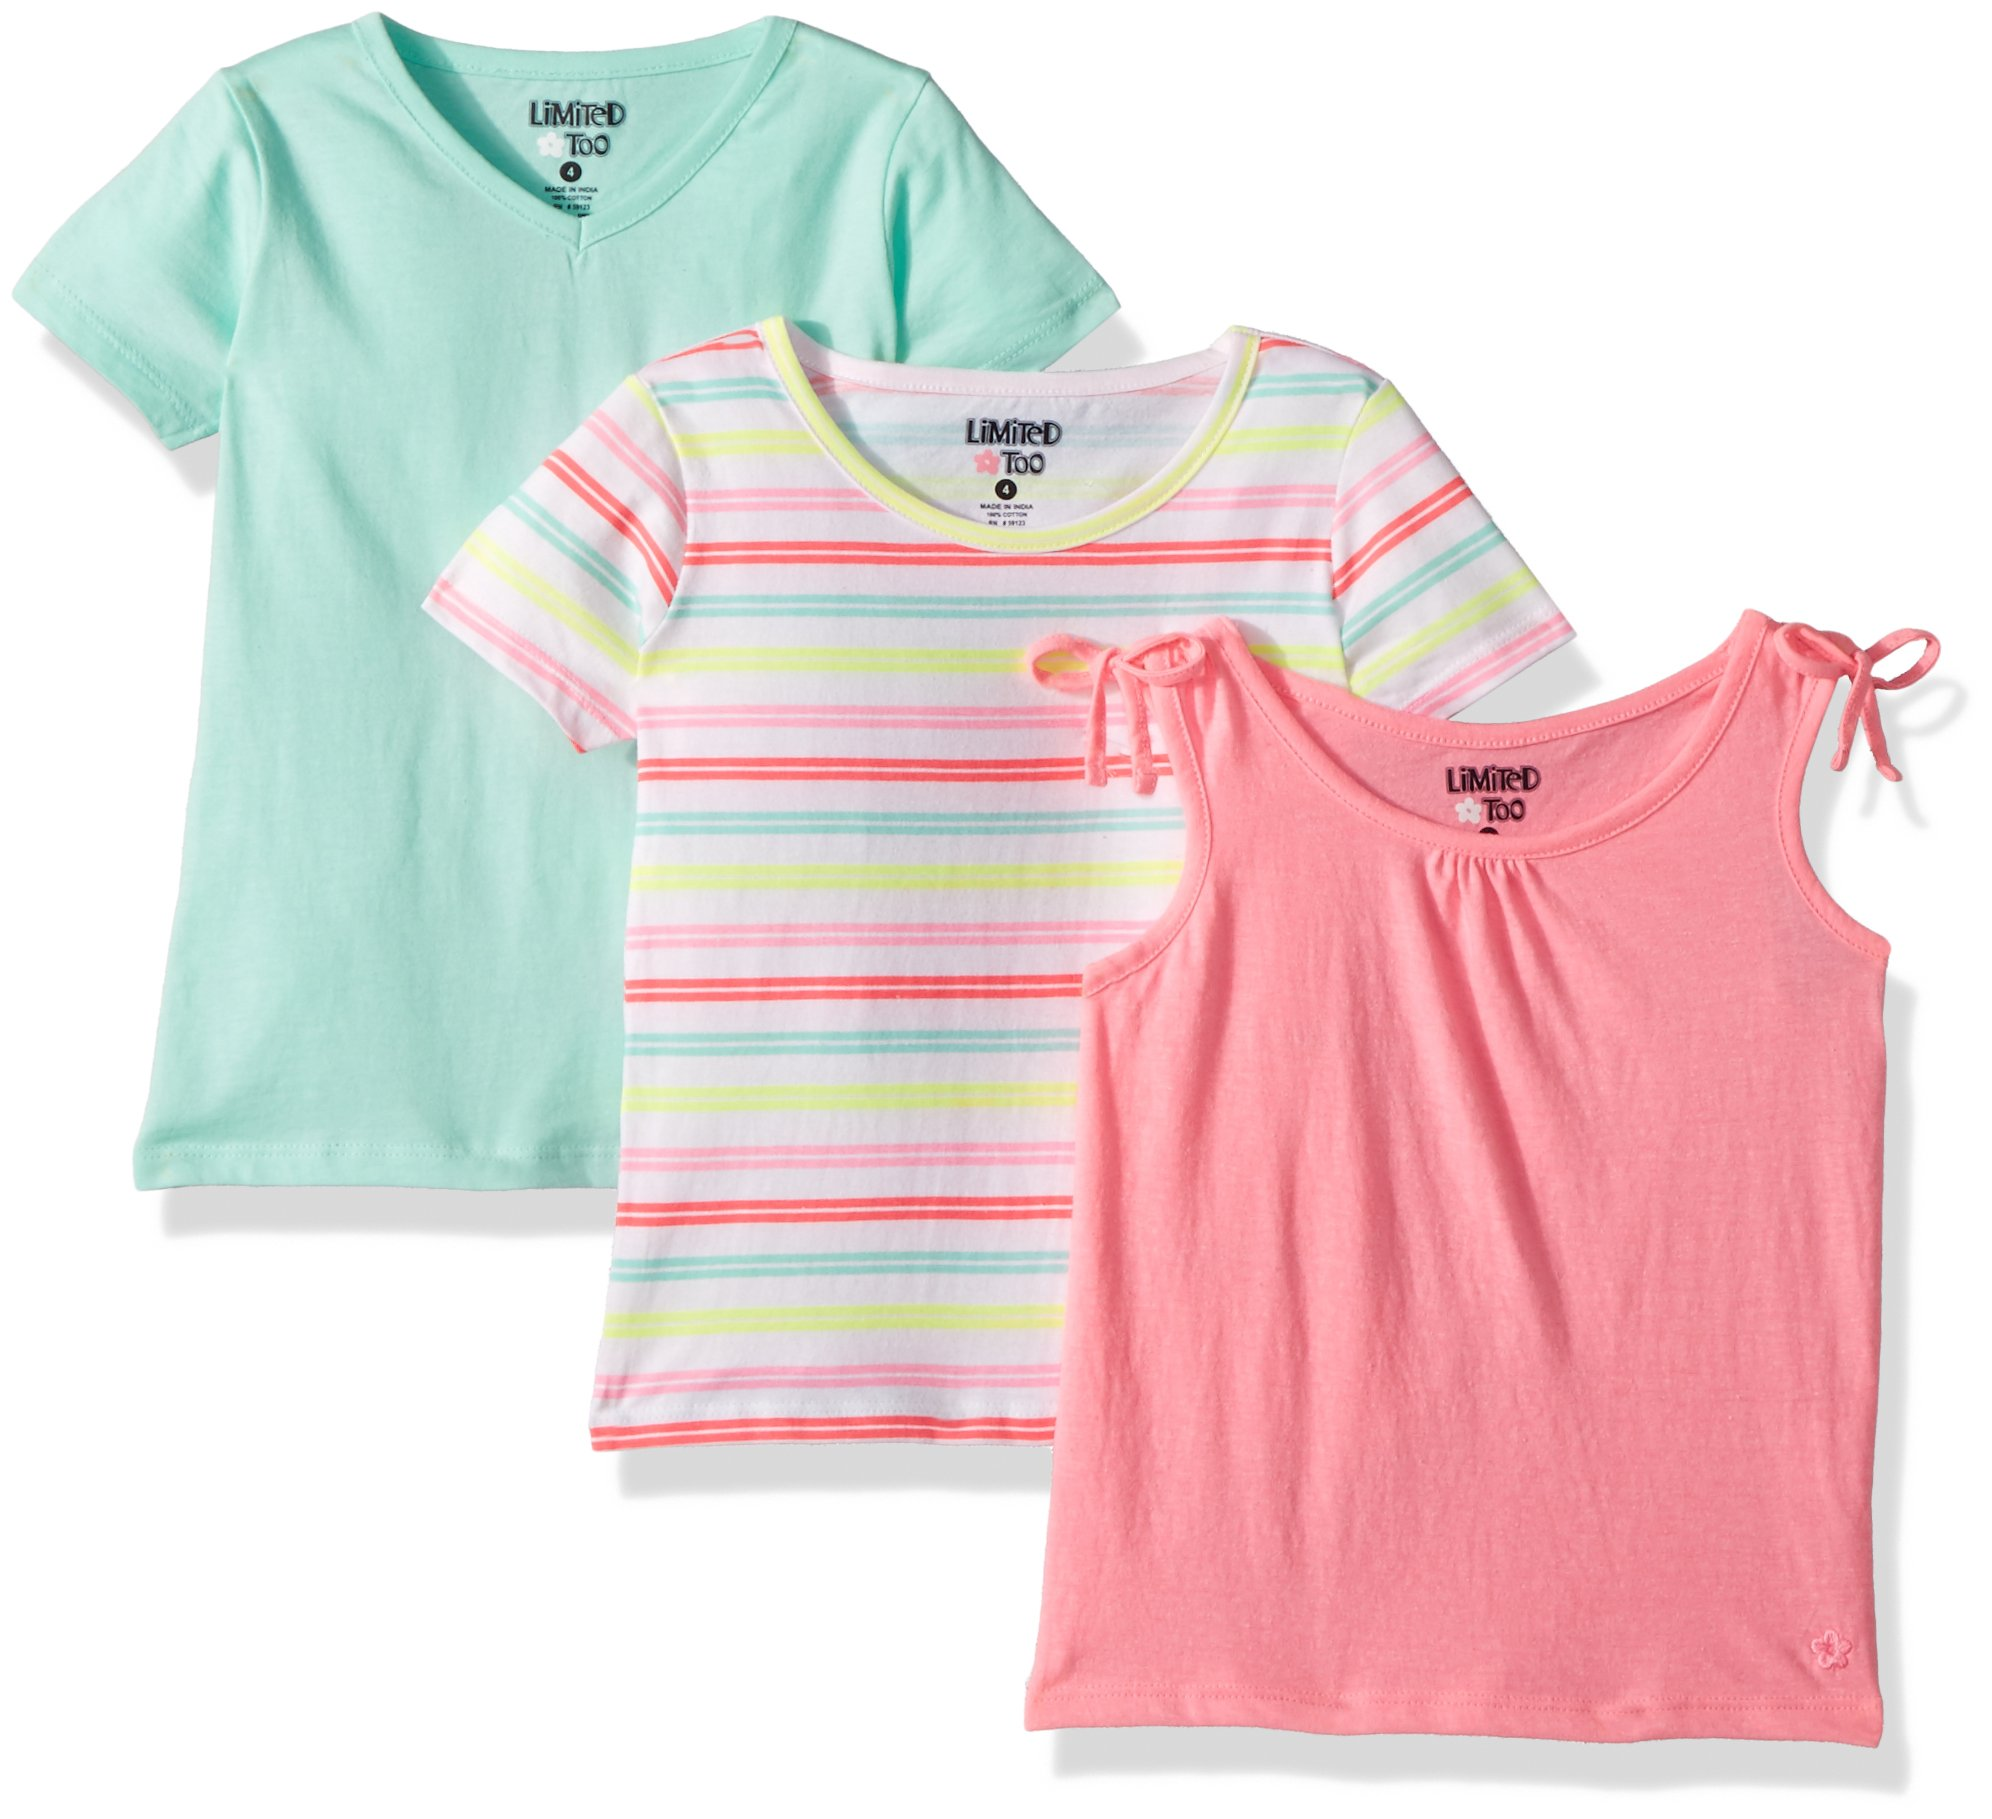 Limited Too Big Girls' 3 Pack T-Shirt, Clinched Light Pink Tank Stripes Solid Multi Print, 7/8